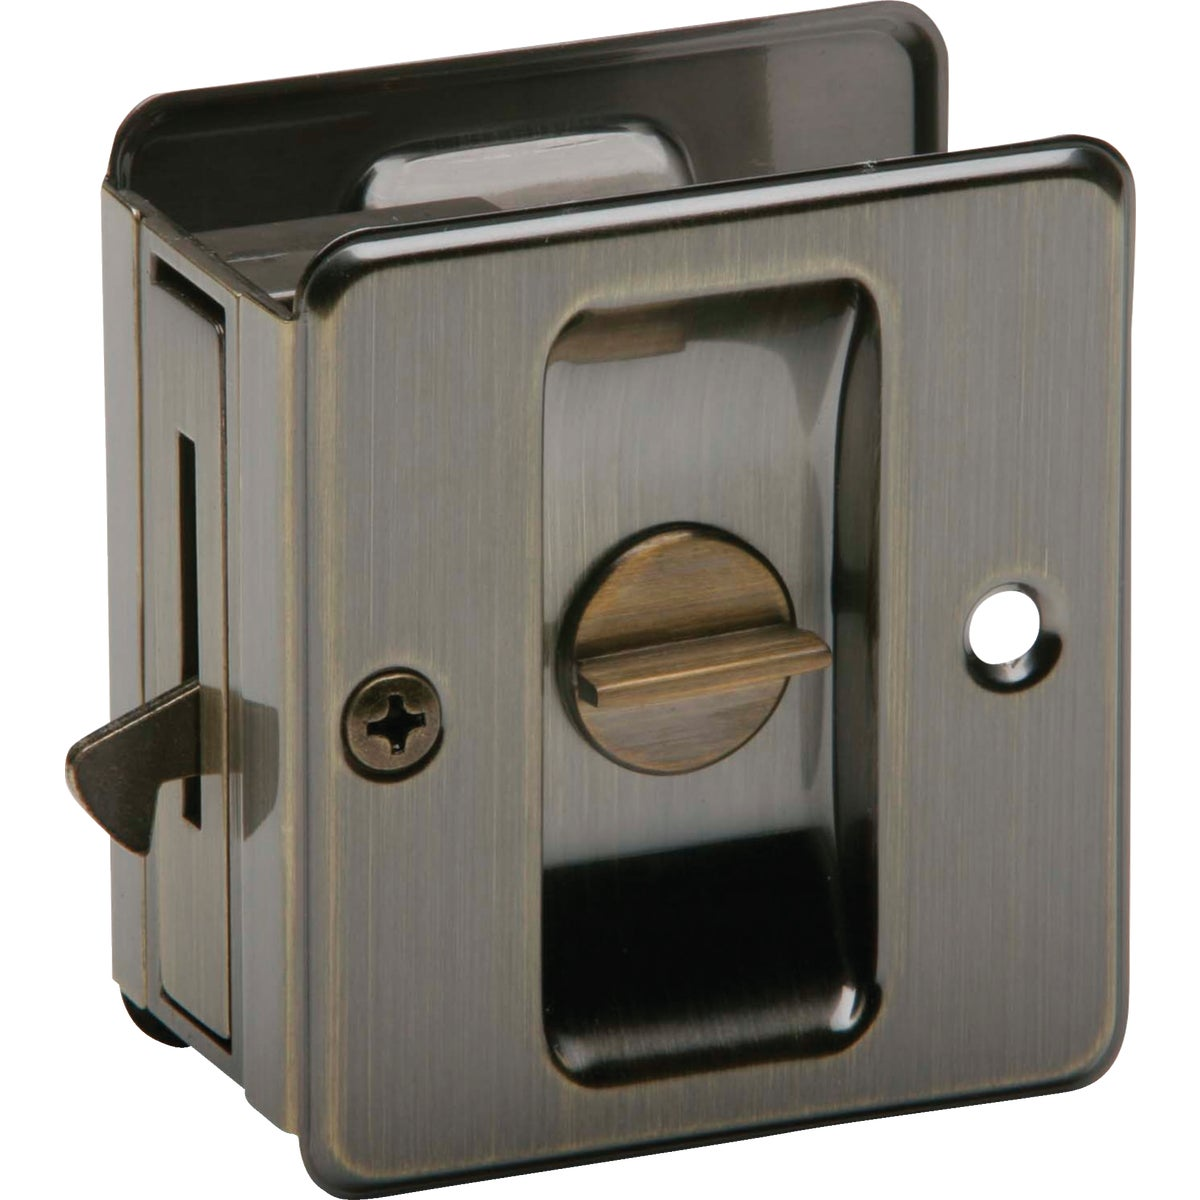 AB PRIV POCKET DOOR PULL - SC991B-609 by Schlage Lock Co